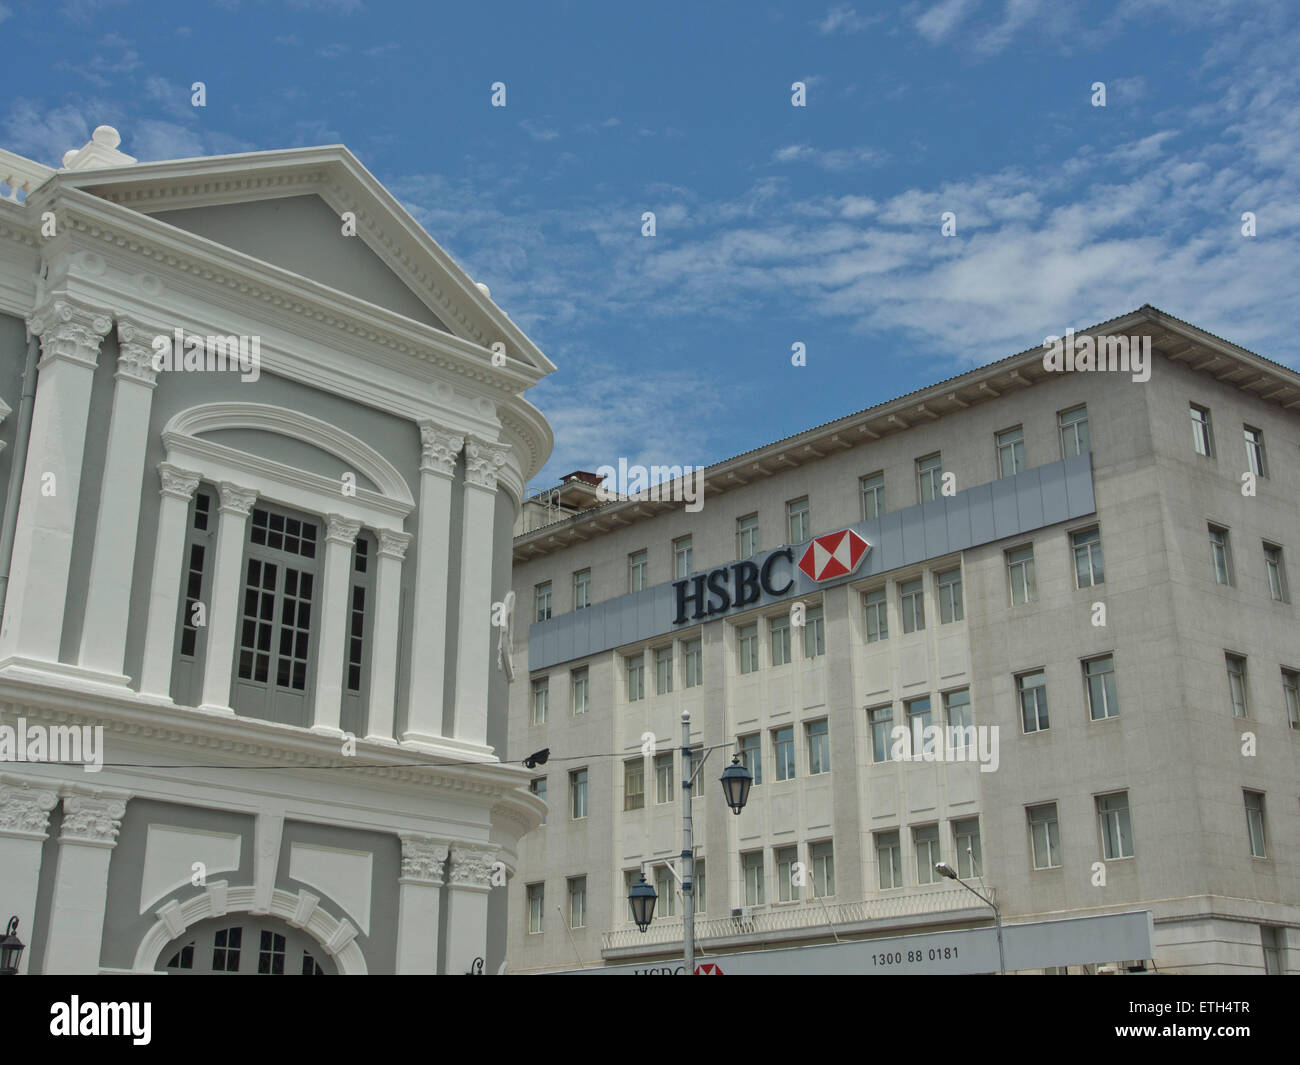 HSBC bank downtown Penang, Malaysia Stock Photo: 83970231 - Alamy